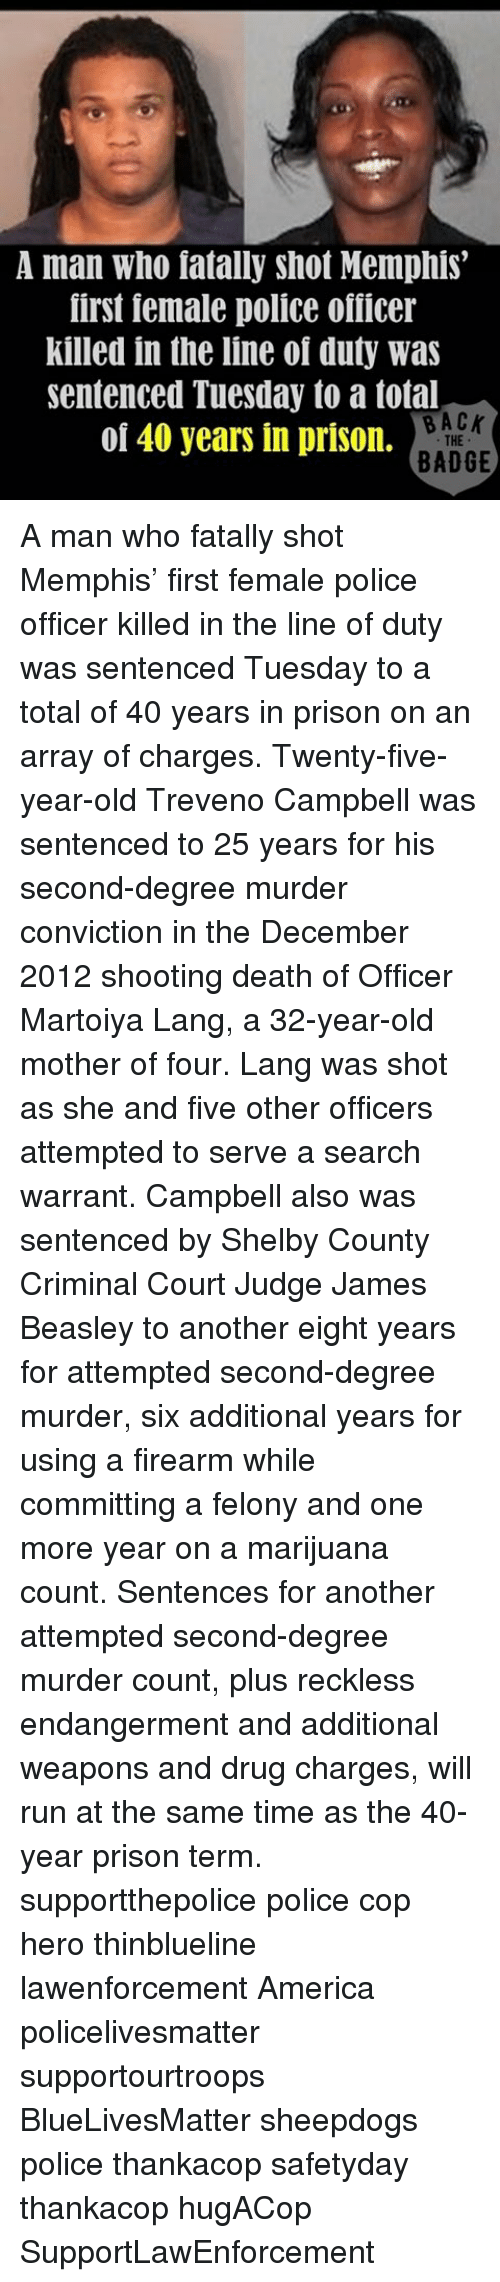 Beasley: A man who fatally shot Memphis  first female police ofiicer  killed in the line of duty was  sentenced Tuesday to a total  BACK  of 40 years in prison.  THE  BADGE A man who fatally shot Memphis' first female police officer killed in the line of duty was sentenced Tuesday to a total of 40 years in prison on an array of charges. Twenty-five-year-old Treveno Campbell was sentenced to 25 years for his second-degree murder conviction in the December 2012 shooting death of Officer Martoiya Lang, a 32-year-old mother of four. Lang was shot as she and five other officers attempted to serve a search warrant. Campbell also was sentenced by Shelby County Criminal Court Judge James Beasley to another eight years for attempted second-degree murder, six additional years for using a firearm while committing a felony and one more year on a marijuana count. Sentences for another attempted second-degree murder count, plus reckless endangerment and additional weapons and drug charges, will run at the same time as the 40-year prison term. supportthepolice police cop hero thinblueline lawenforcement America policelivesmatter supportourtroops BlueLivesMatter sheepdogs police thankacop safetyday thankacop hugACop SupportLawEnforcement